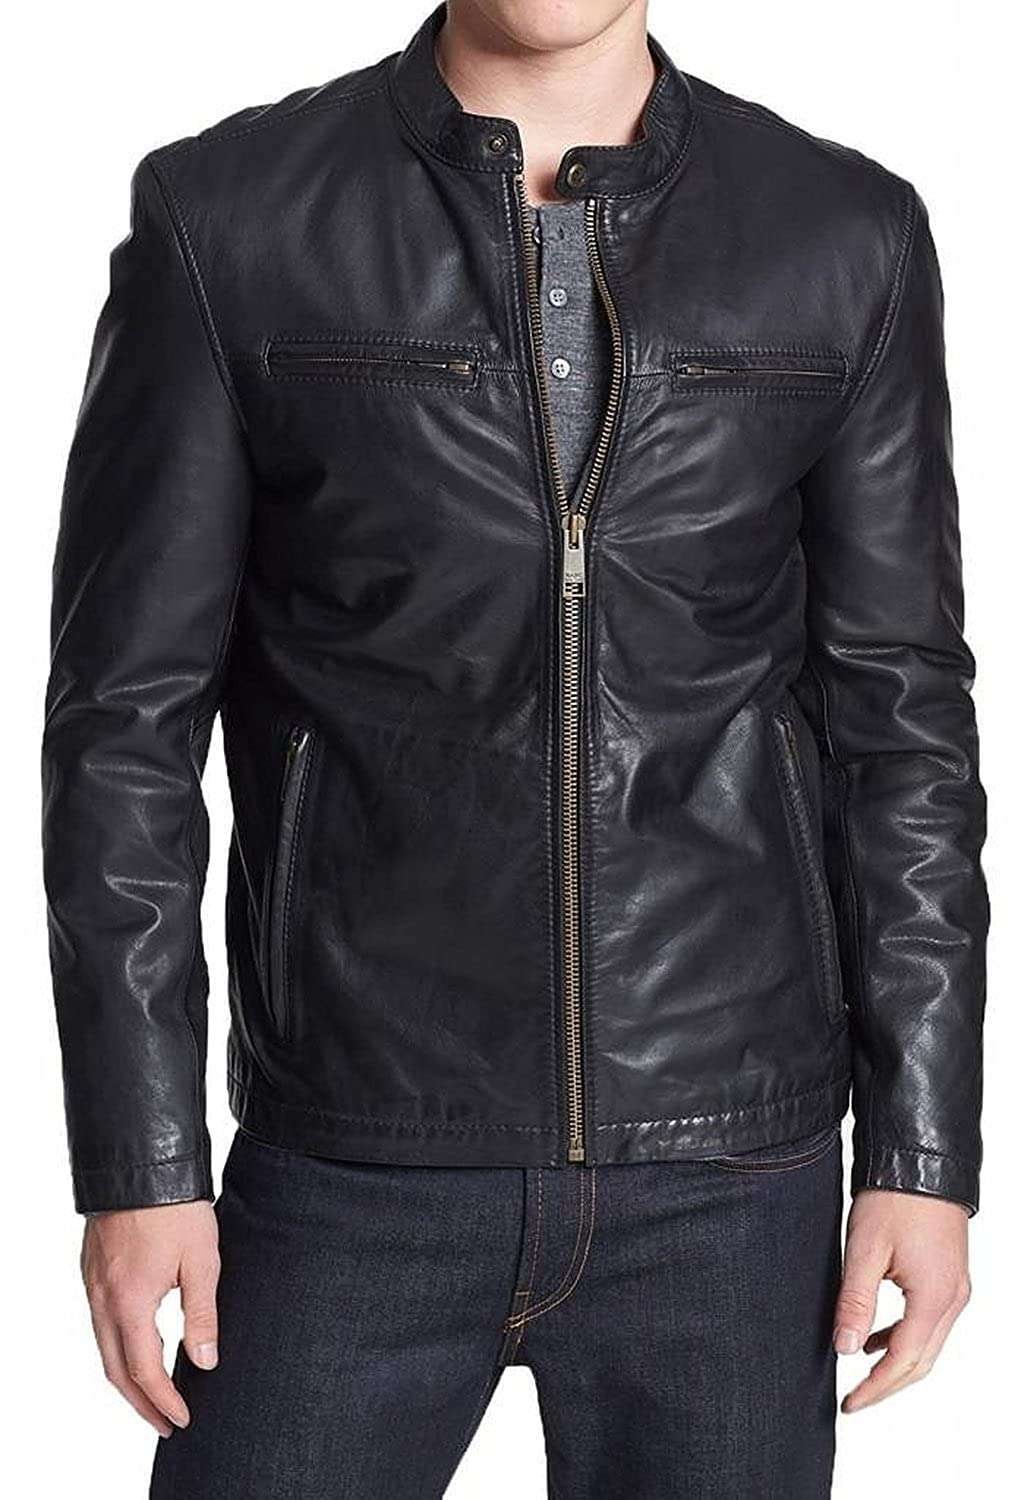 Laverapelle Men's Lamb skin Real Leather Jacket Black - 1510021